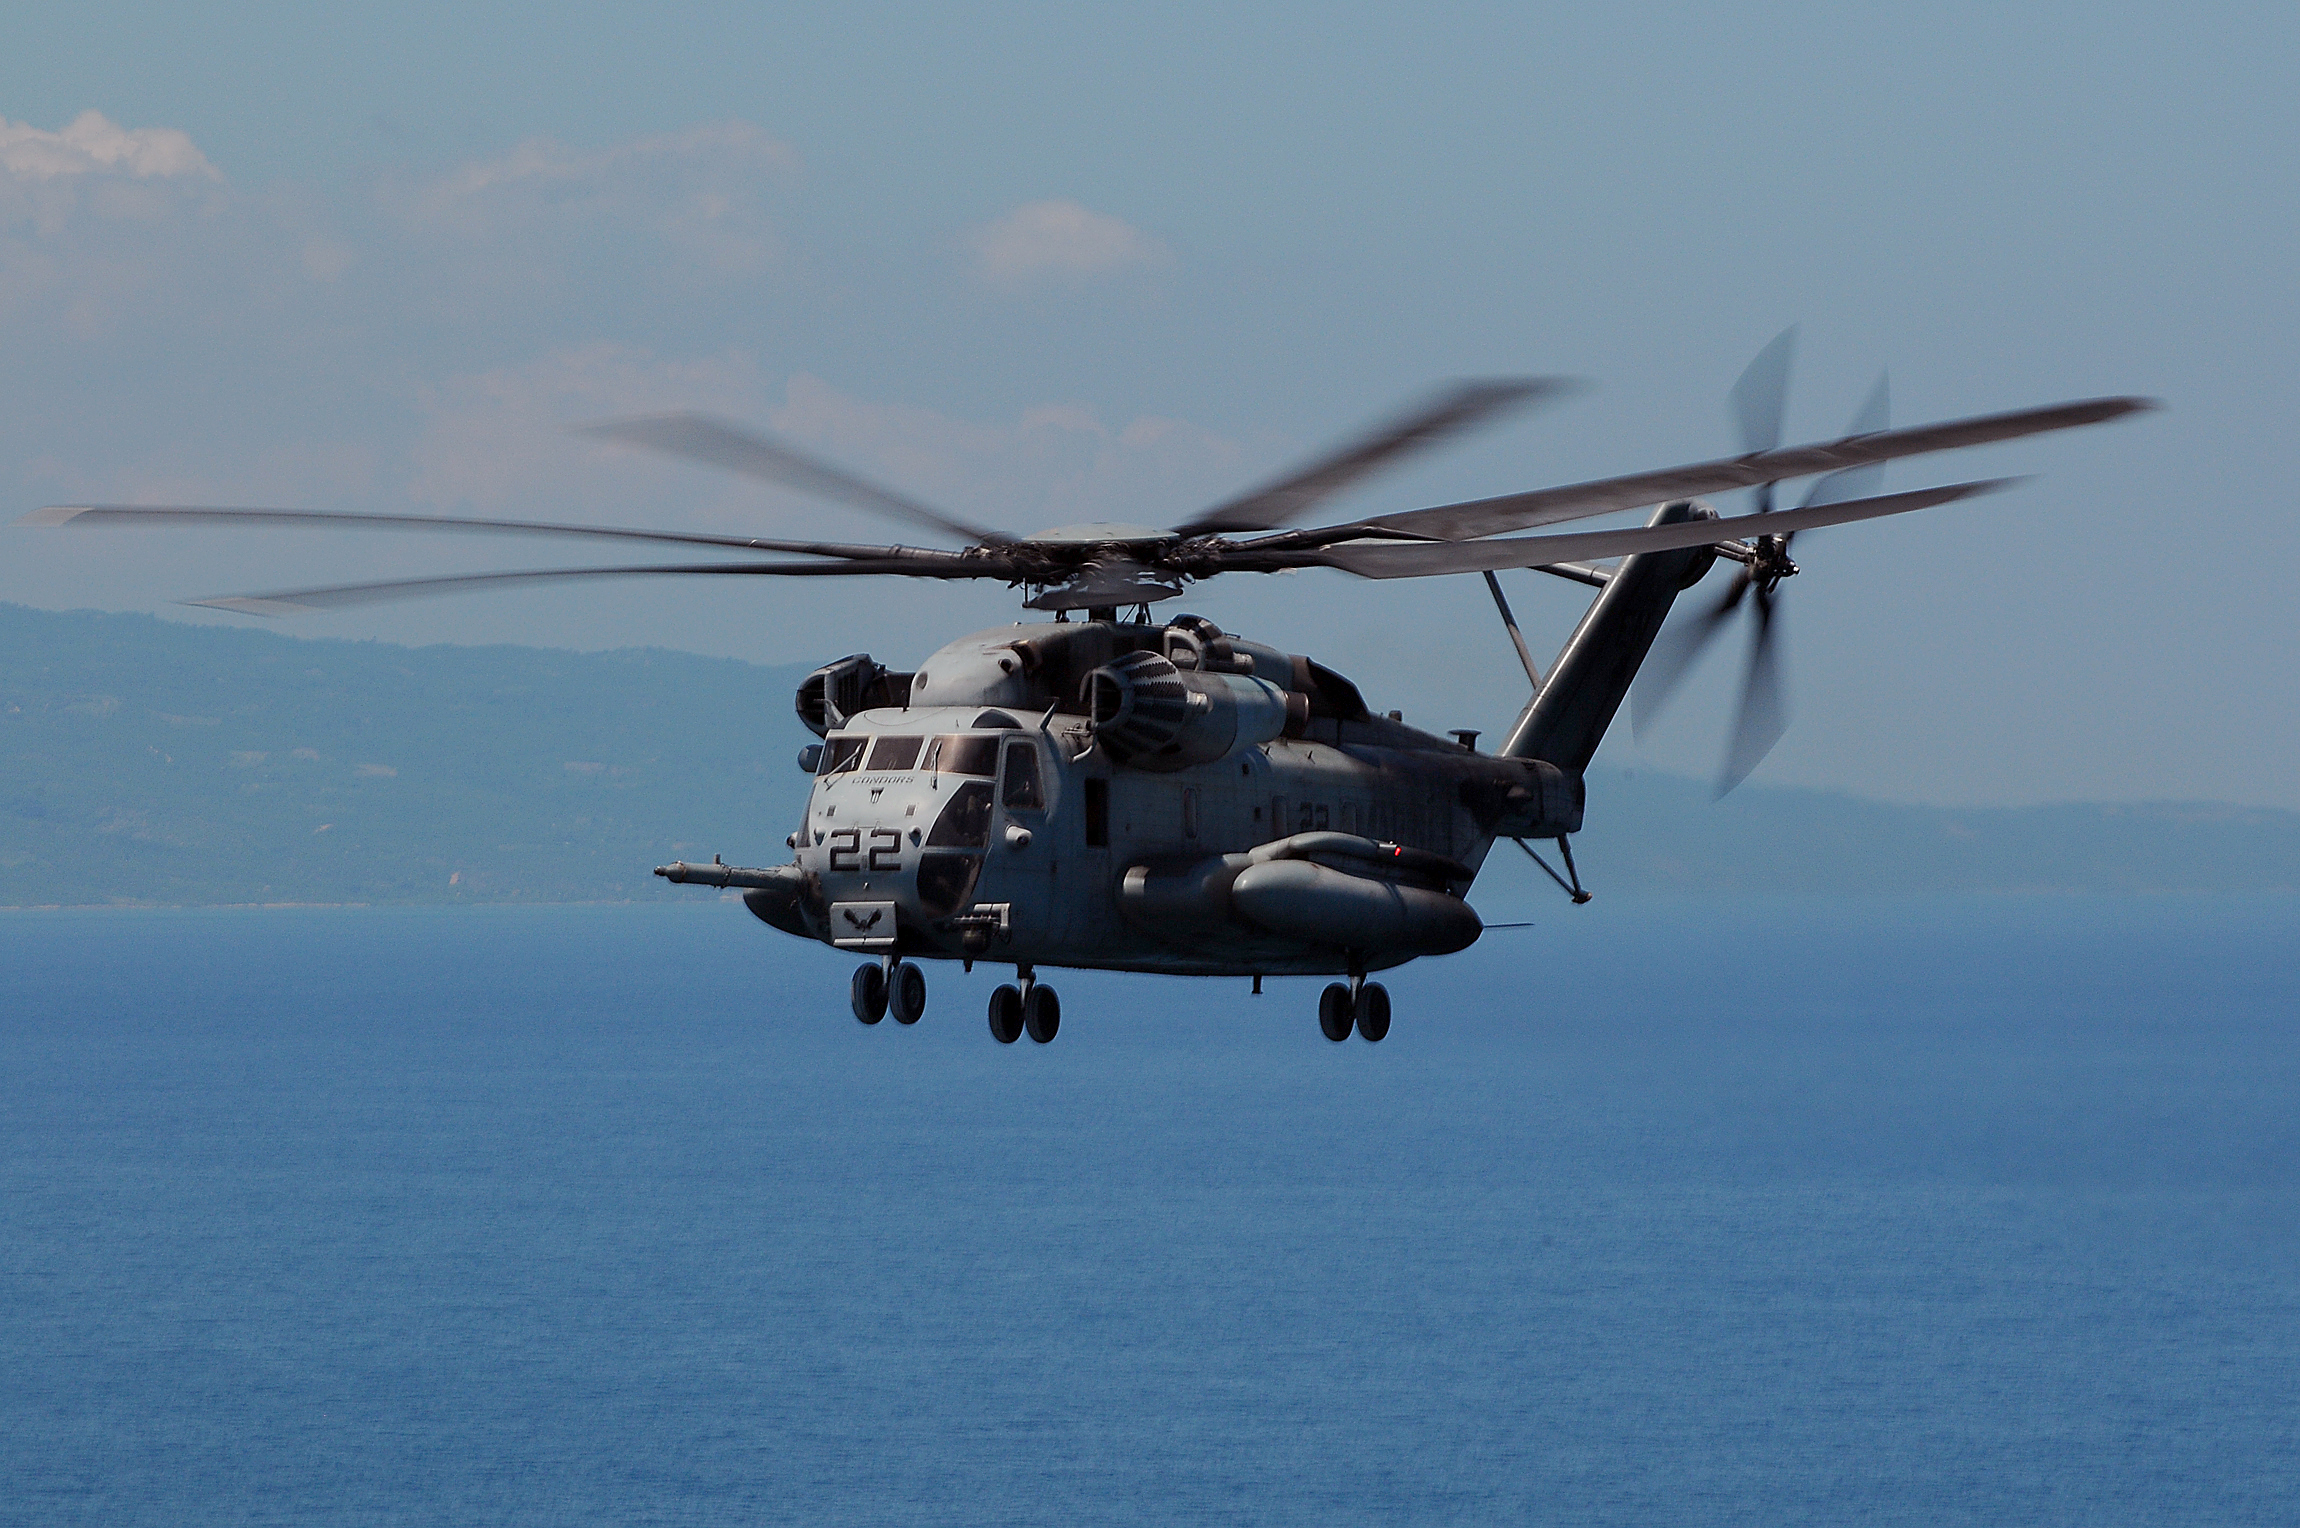 File:US Navy 080913-N-4515N-007 A CH-53 Super Stallion ...